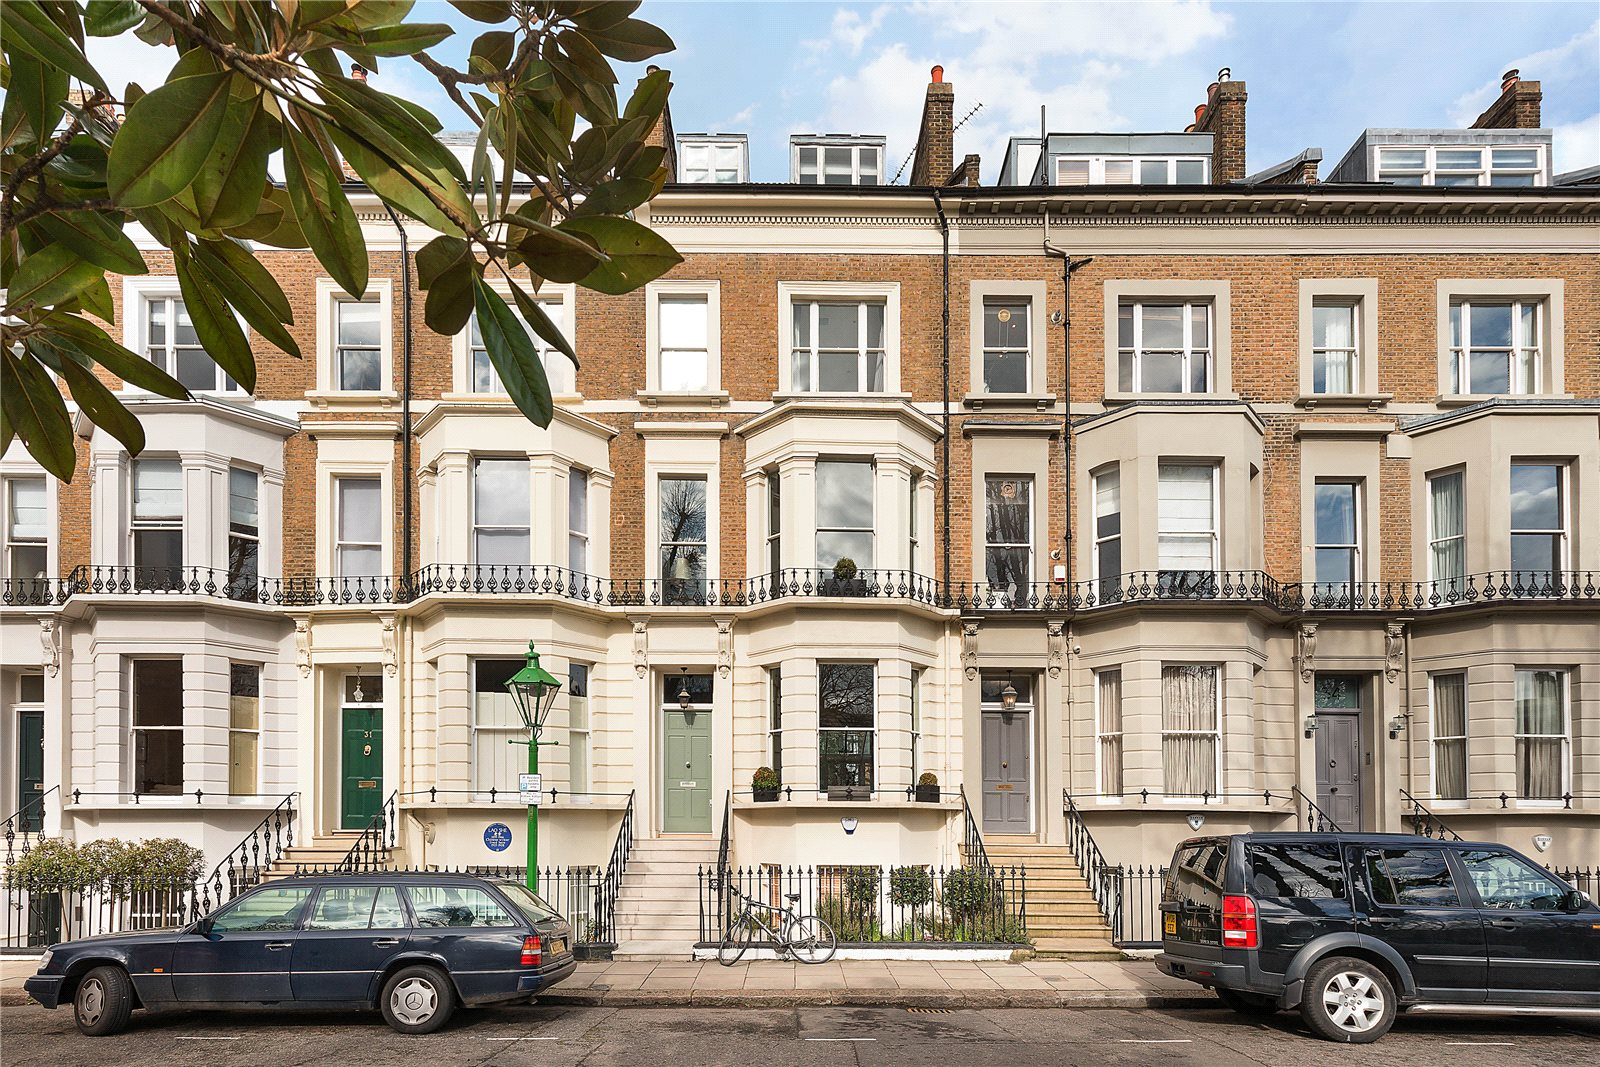 Additional Photo For Property Listing At St Jamess Gardens Holland Park London